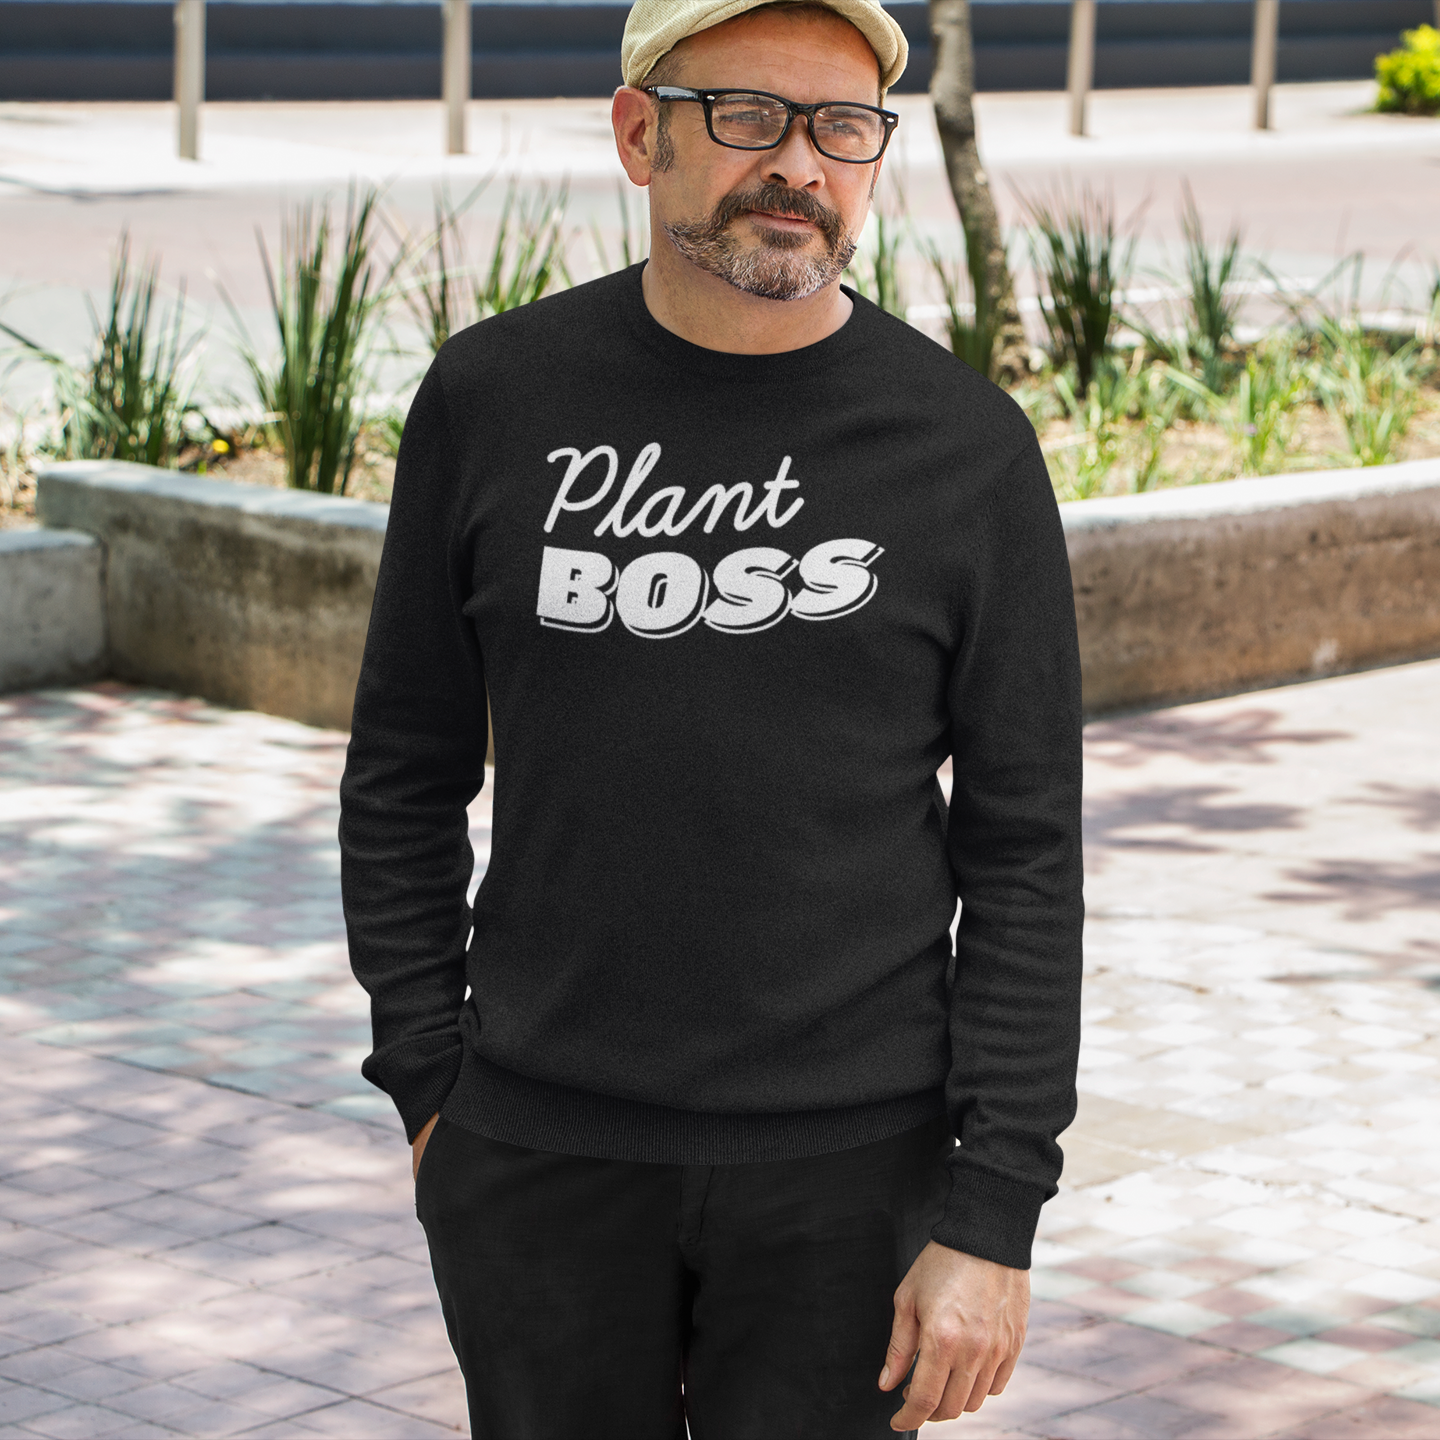 Plant Boss in White Lettering Men's Long Sleeve Tee